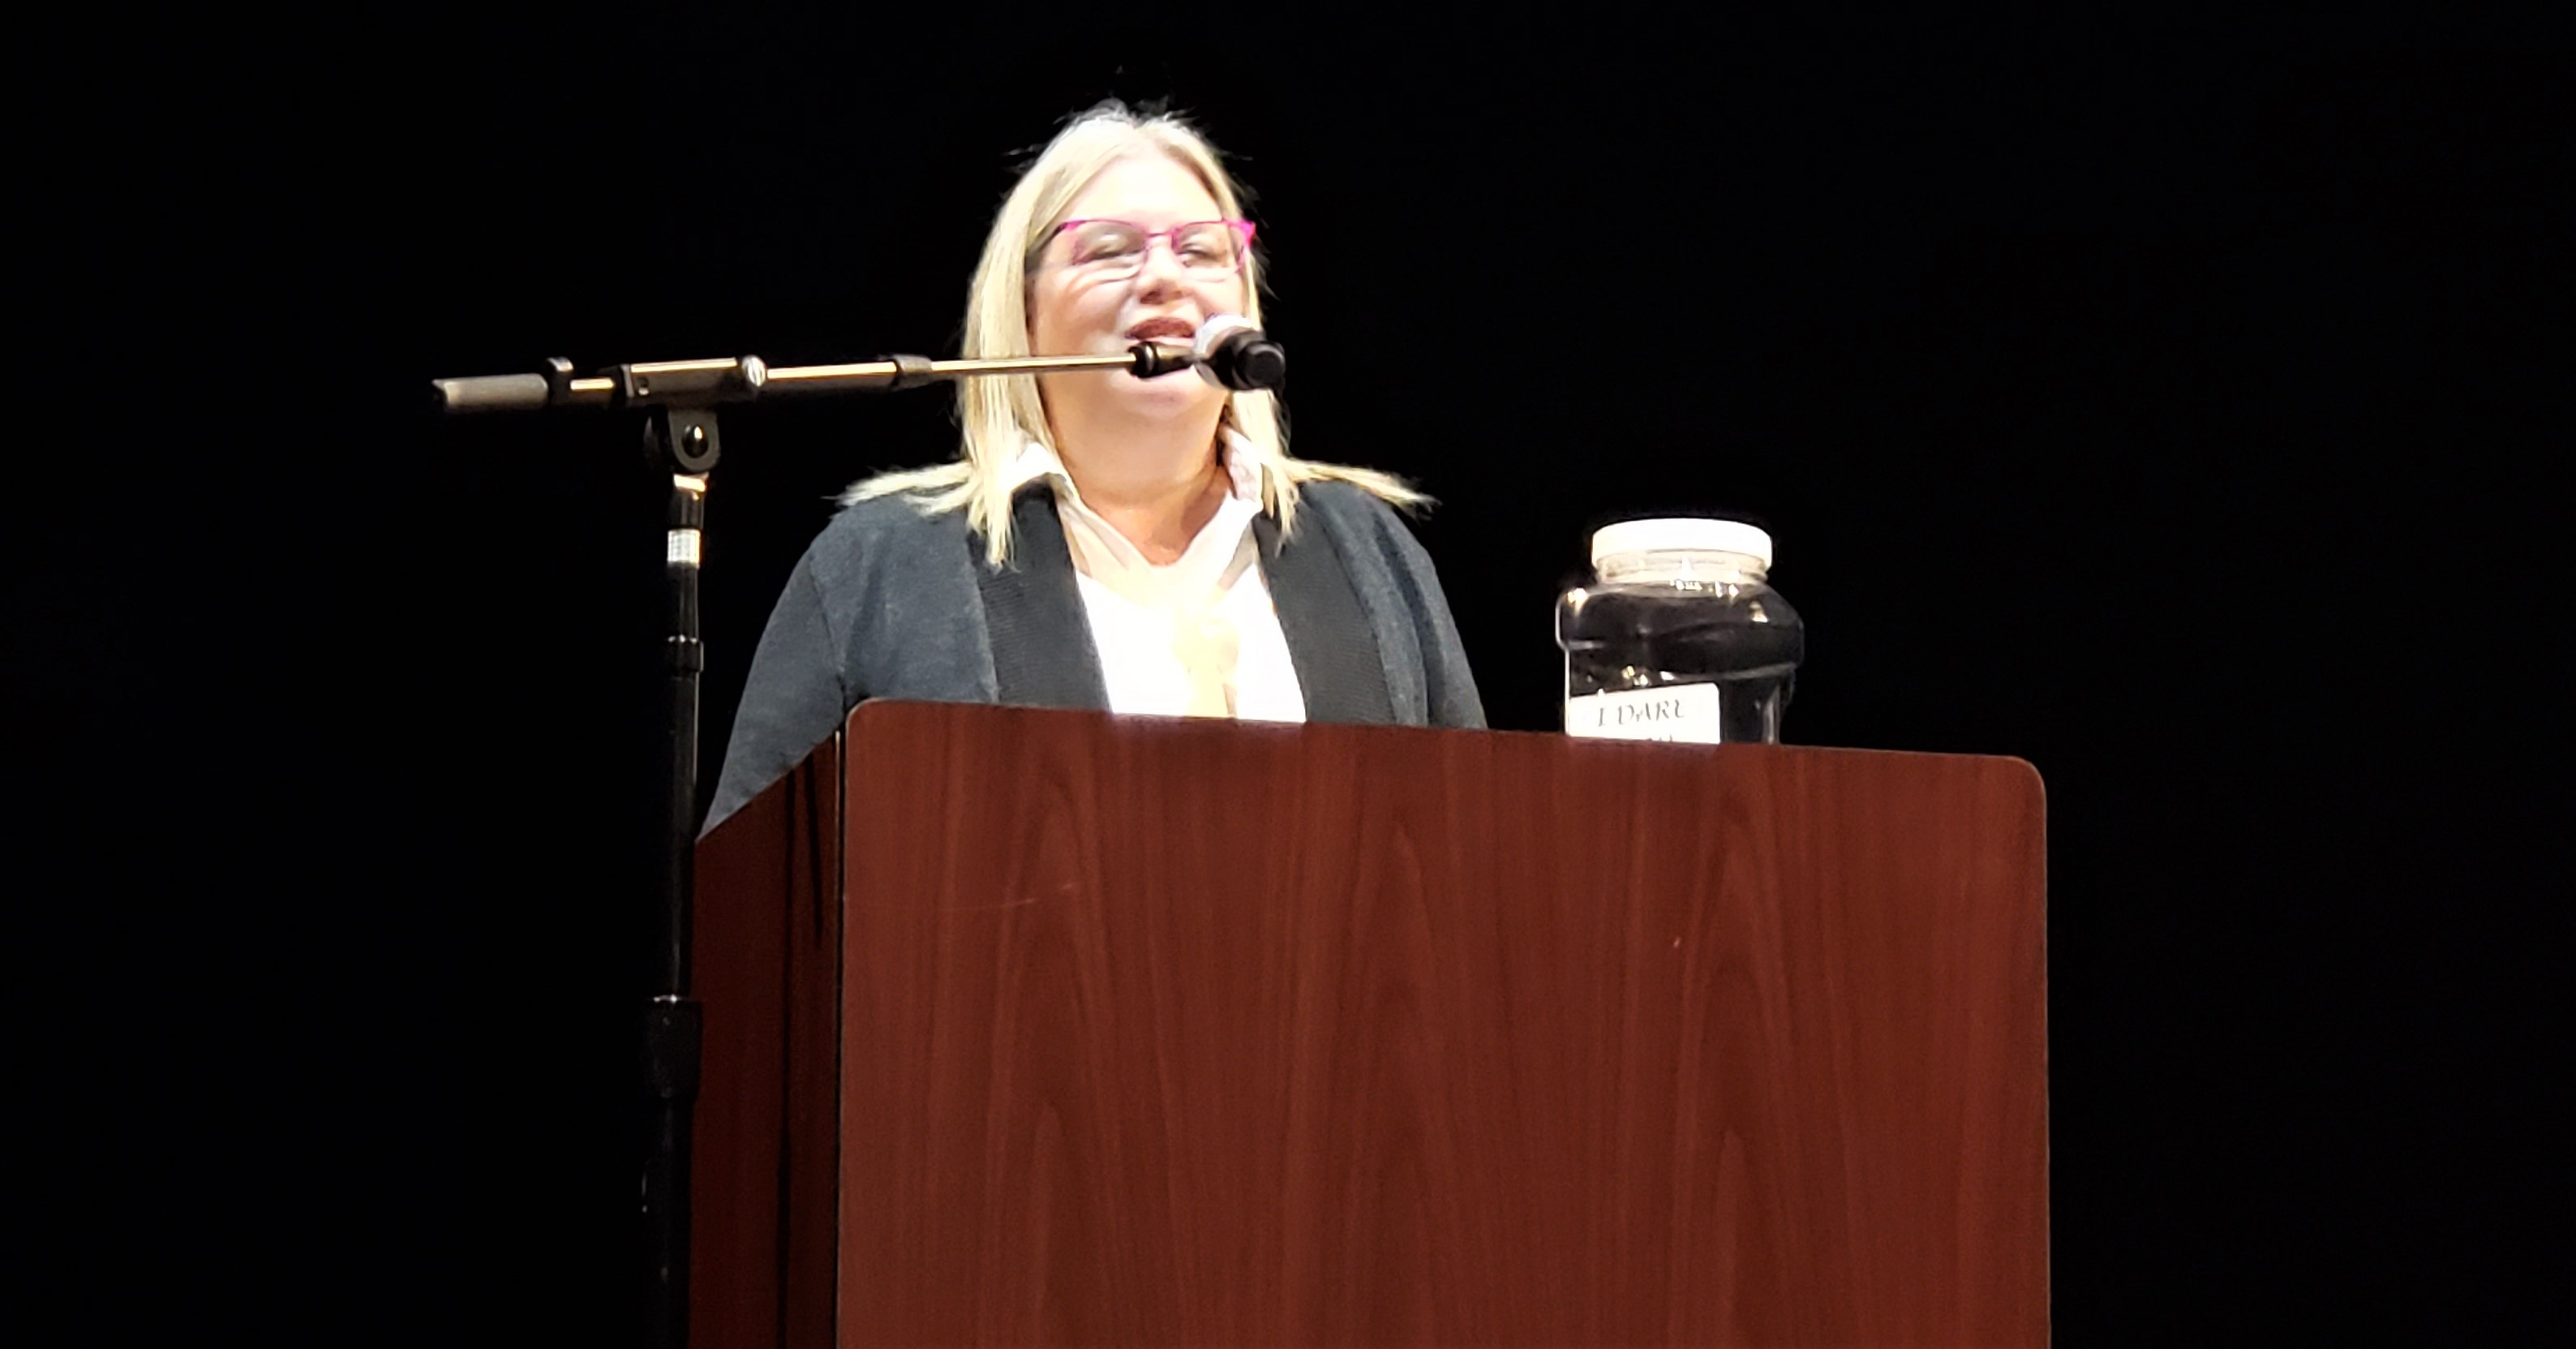 Janet Wygert of Carnival Cruise Line